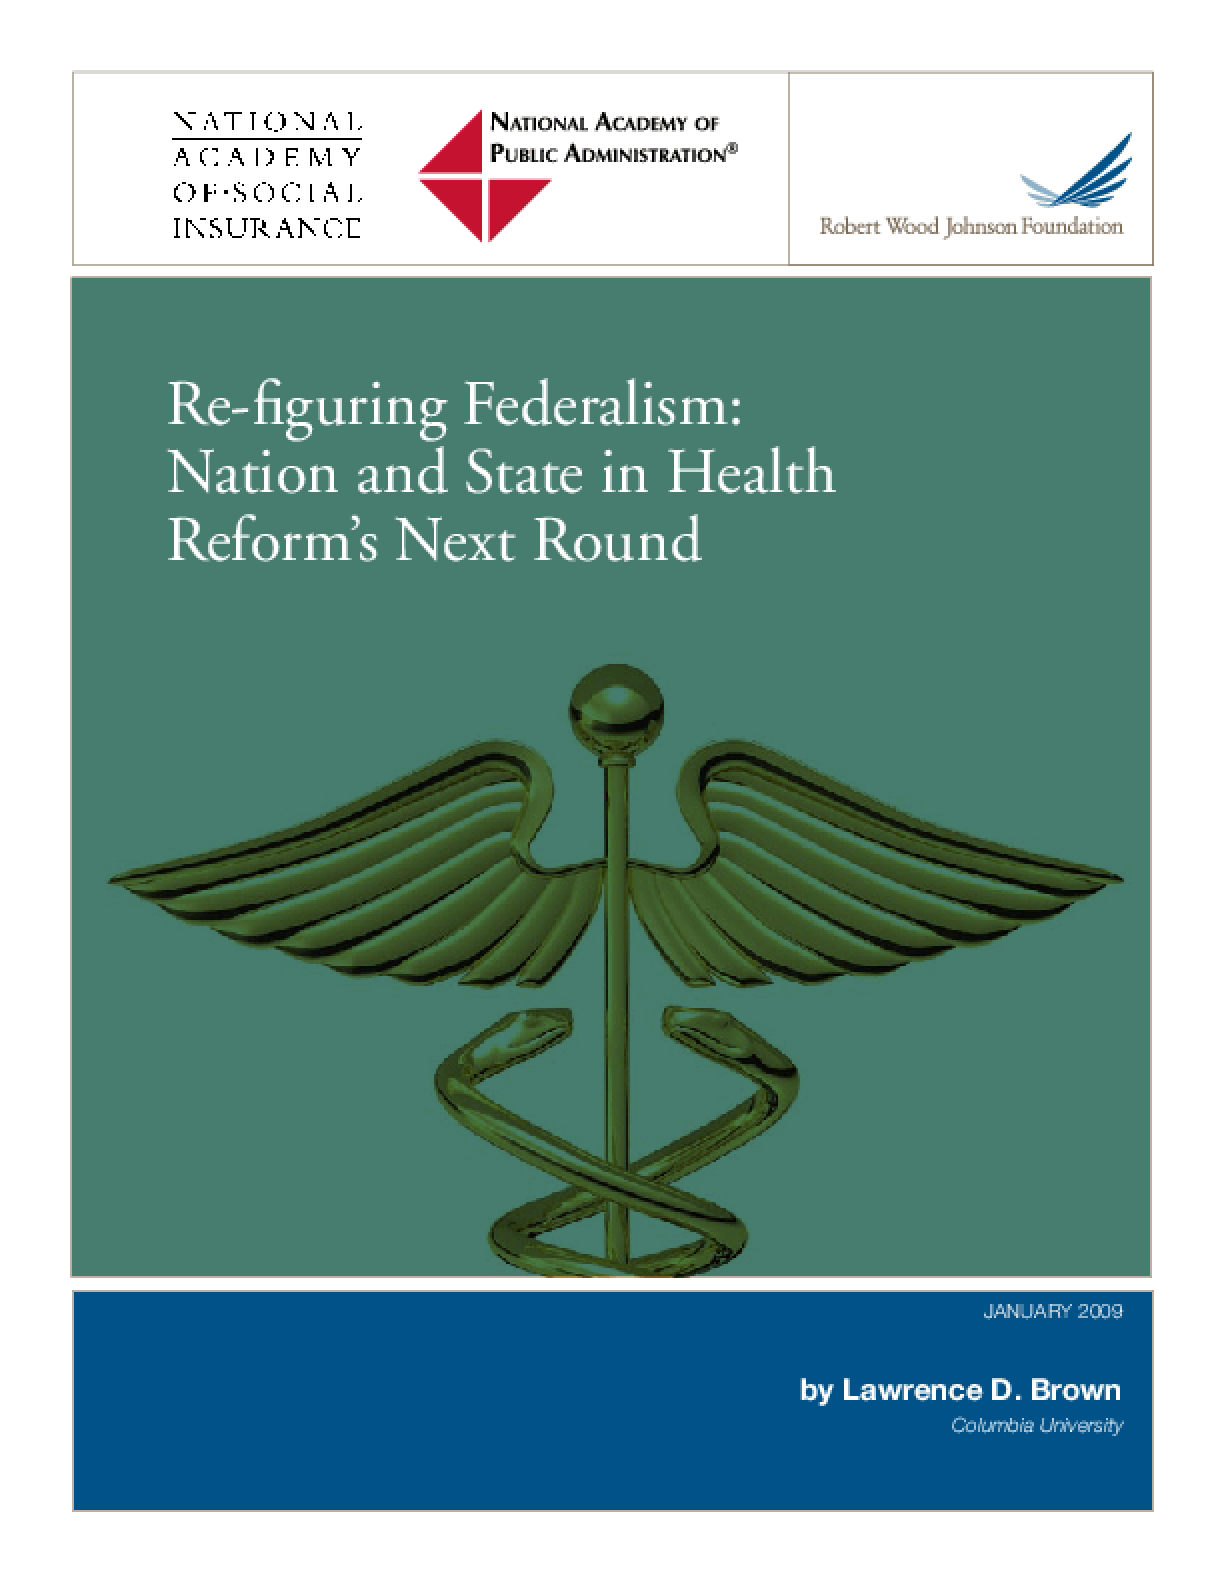 Re-figuring Federalism: Nation and State in Health Reform's Next Round